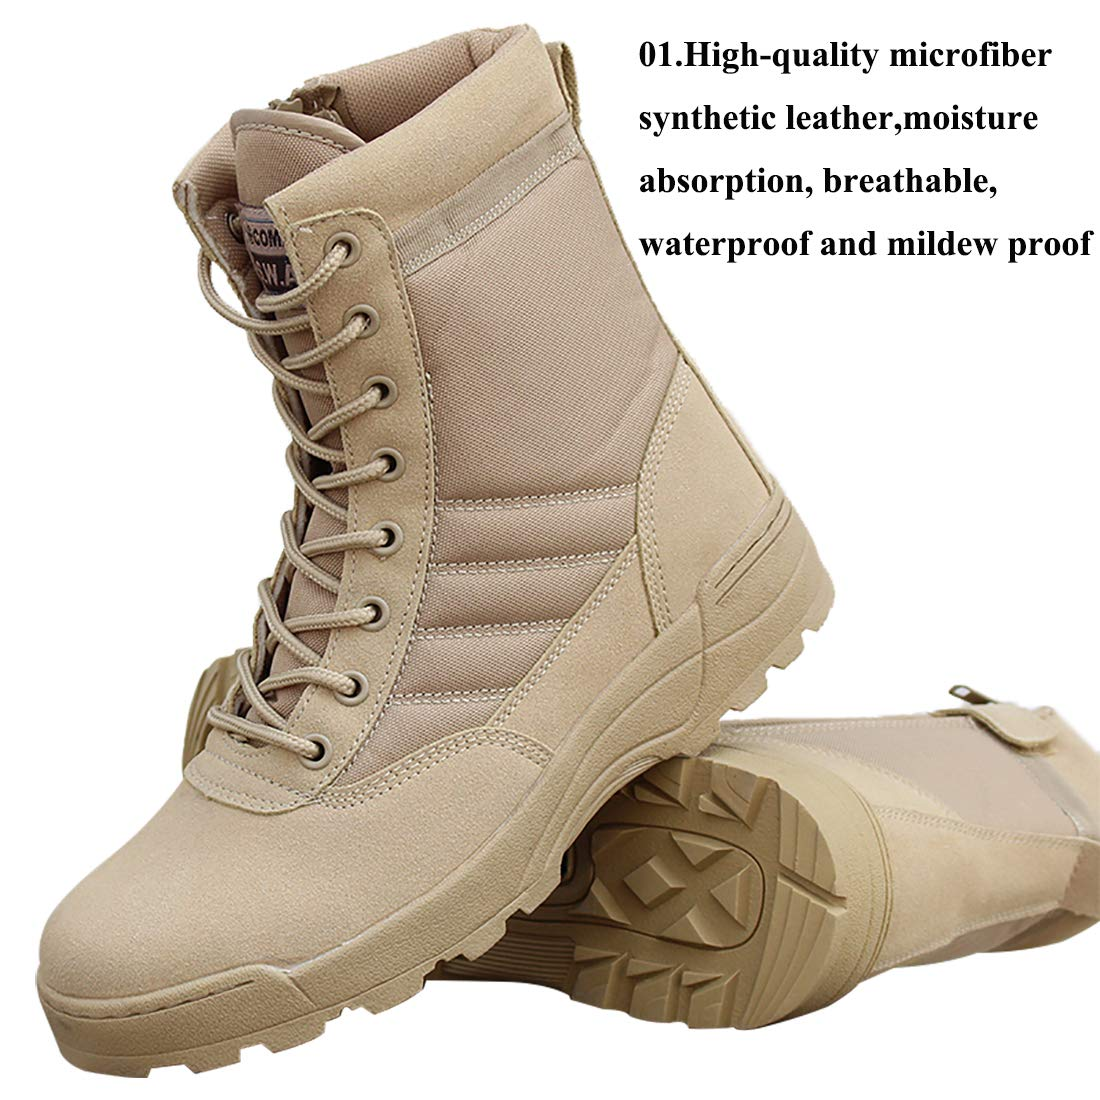 KARKEIN Military Tactical Side Zipper Lace Up Combat Boots Breathable Desert Outdoor Hiking Shoes for Men and Women